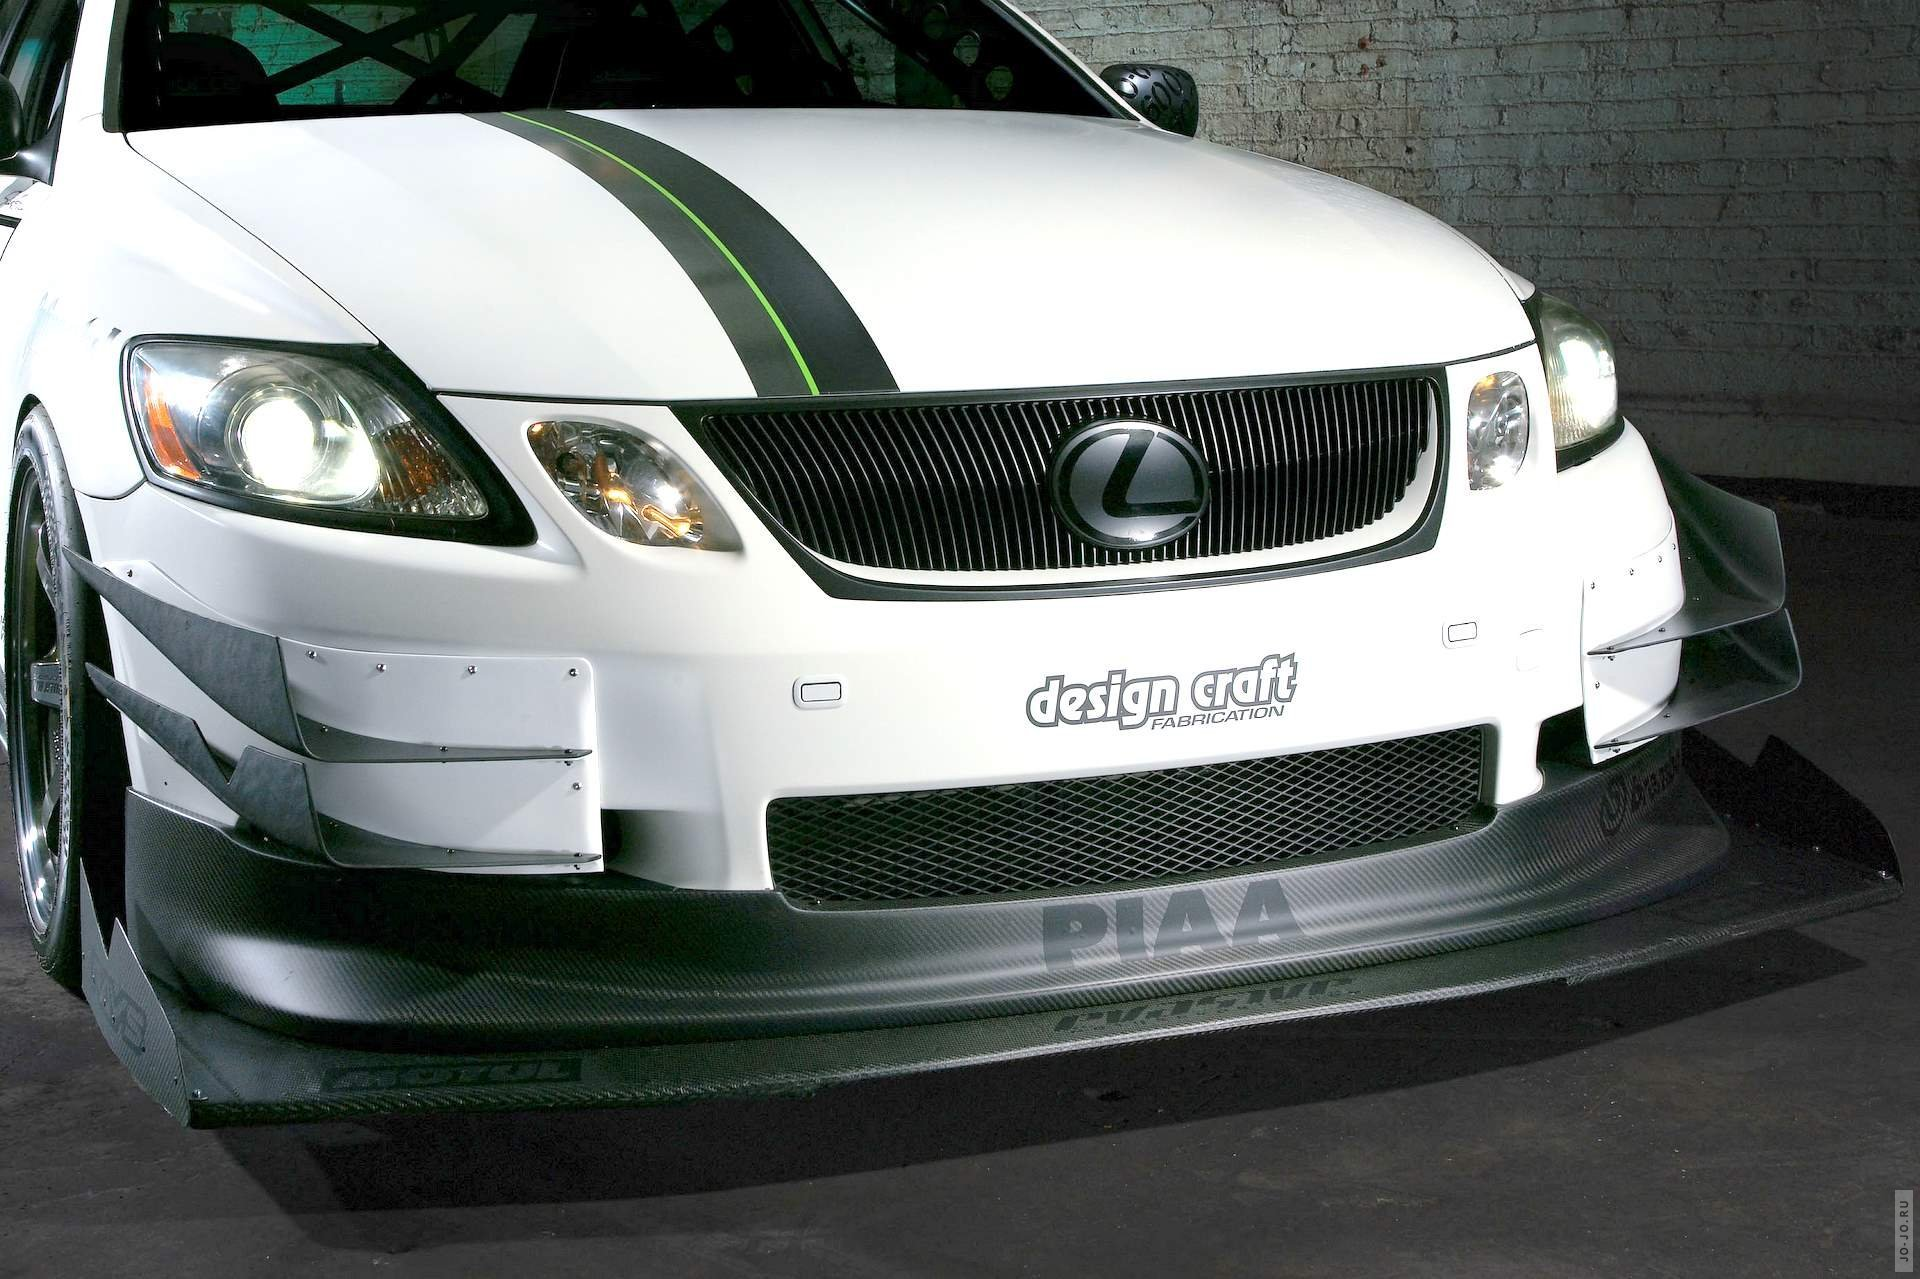 Dropped Daily Ted Huynh Air Lift Lexus Ls430 further Wallpaper 34 further Wallpaper 51 further Wallpaper 37 moreover design. on lexus engine